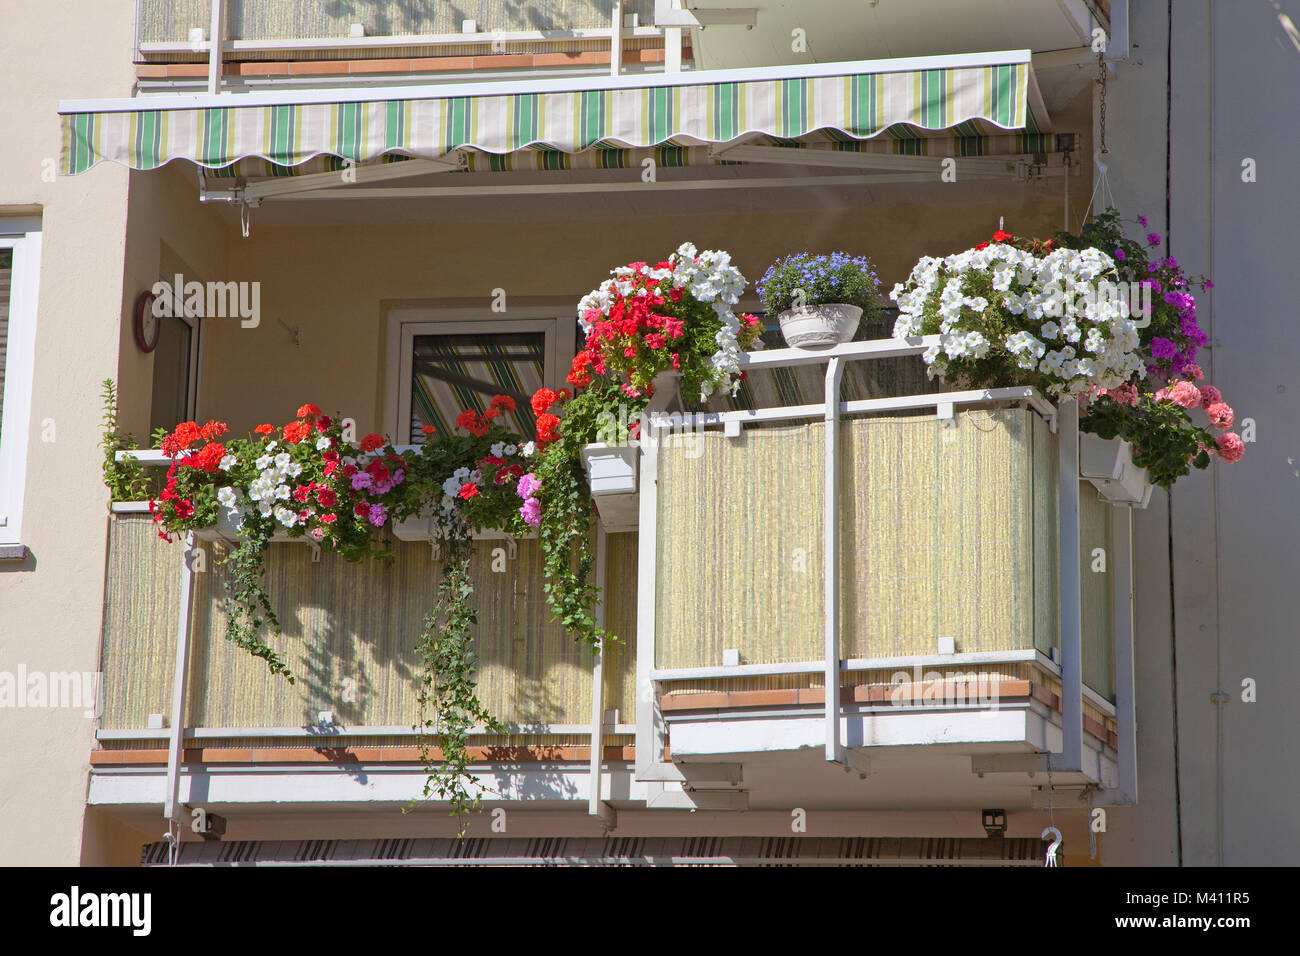 Bilder Balkon Balkon Stockfotos And Balkon Bilder Alamy